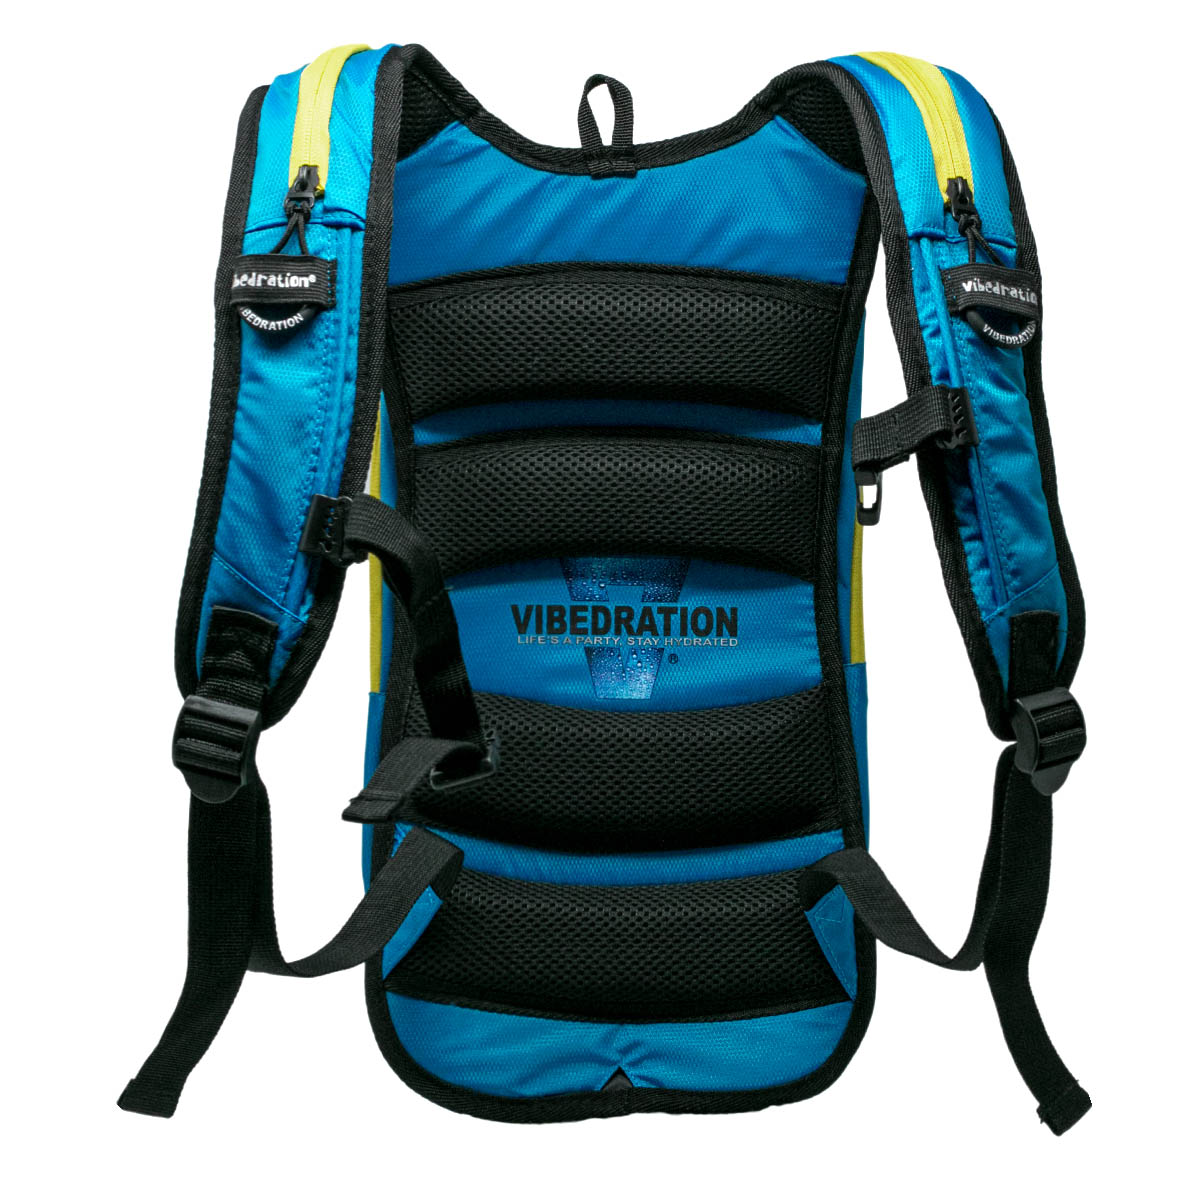 Padded backside of baby blue and yellow hydration pack with three pockets.